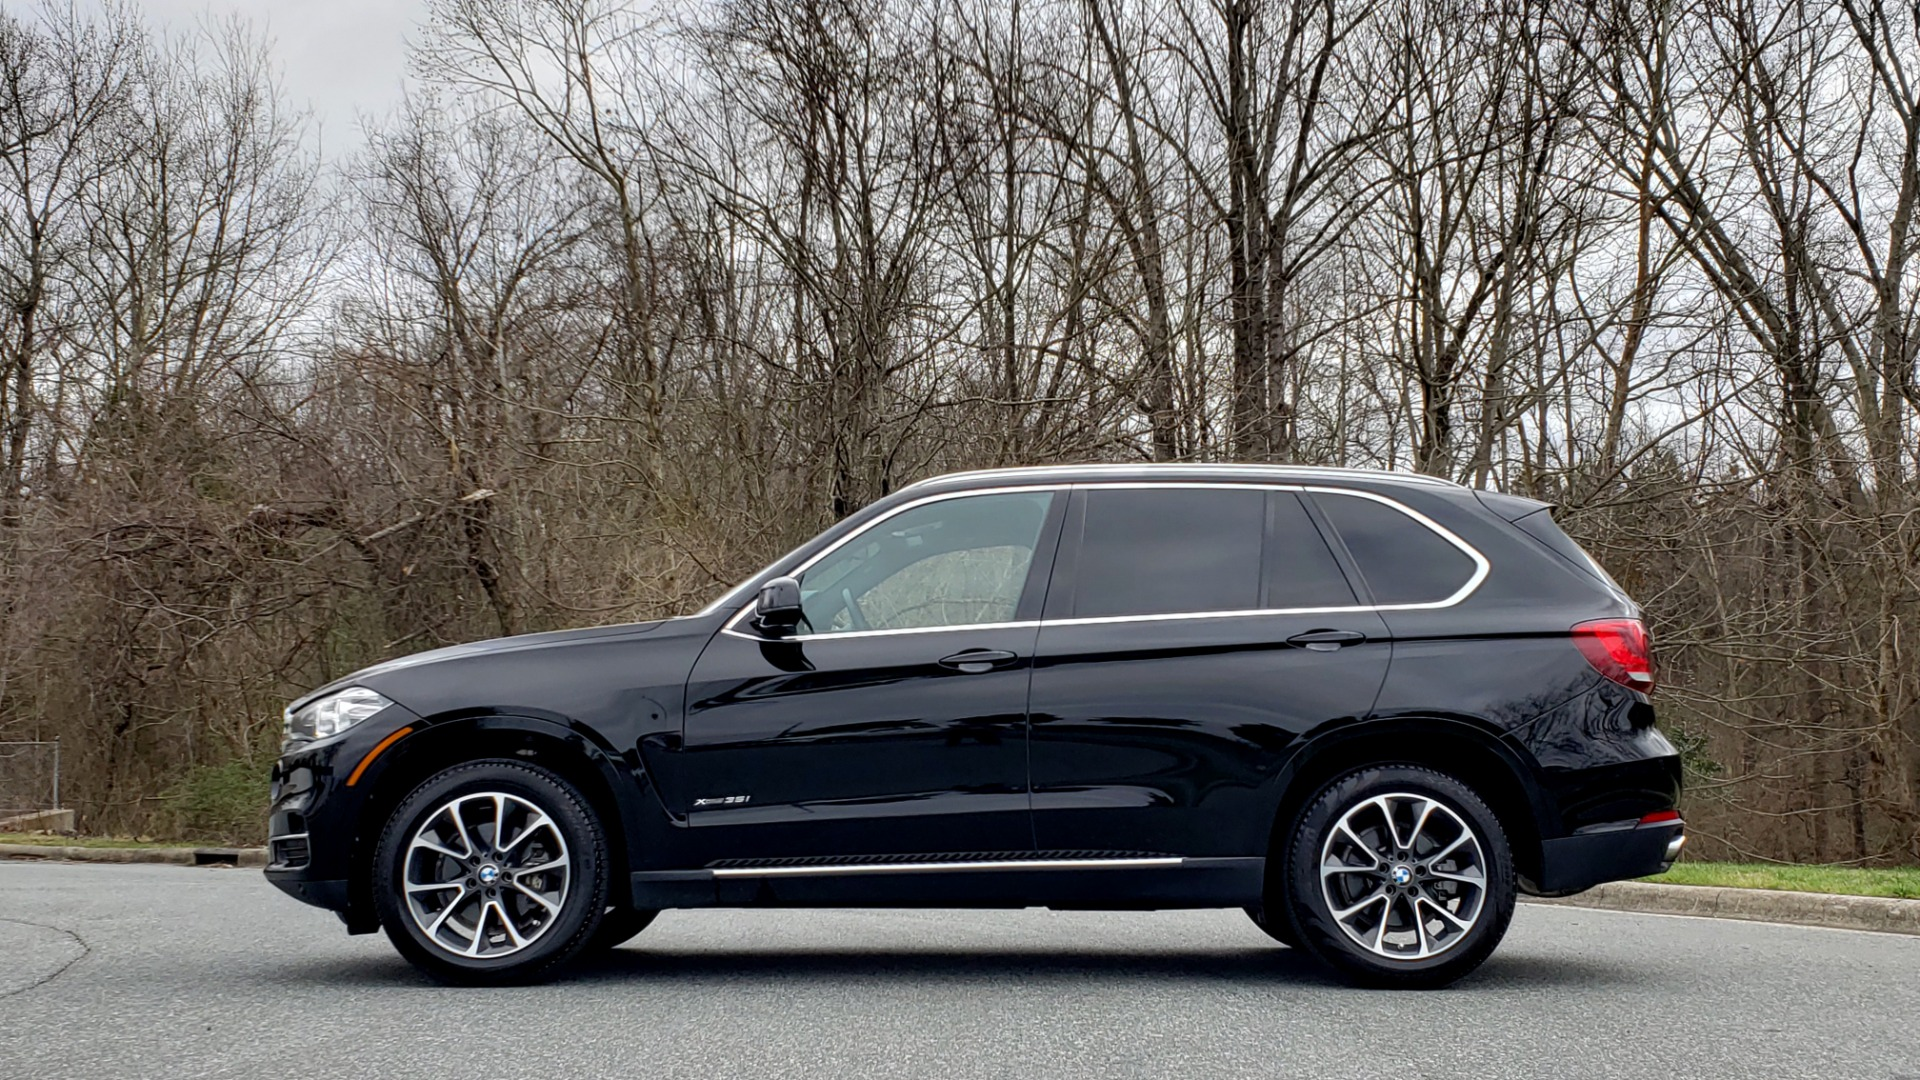 Used 2017 BMW X5 XDRIVE35I / PREM LUX PKG / DRVR ASST / CLD WTHR / APPLE CAR PLAY for sale Sold at Formula Imports in Charlotte NC 28227 2